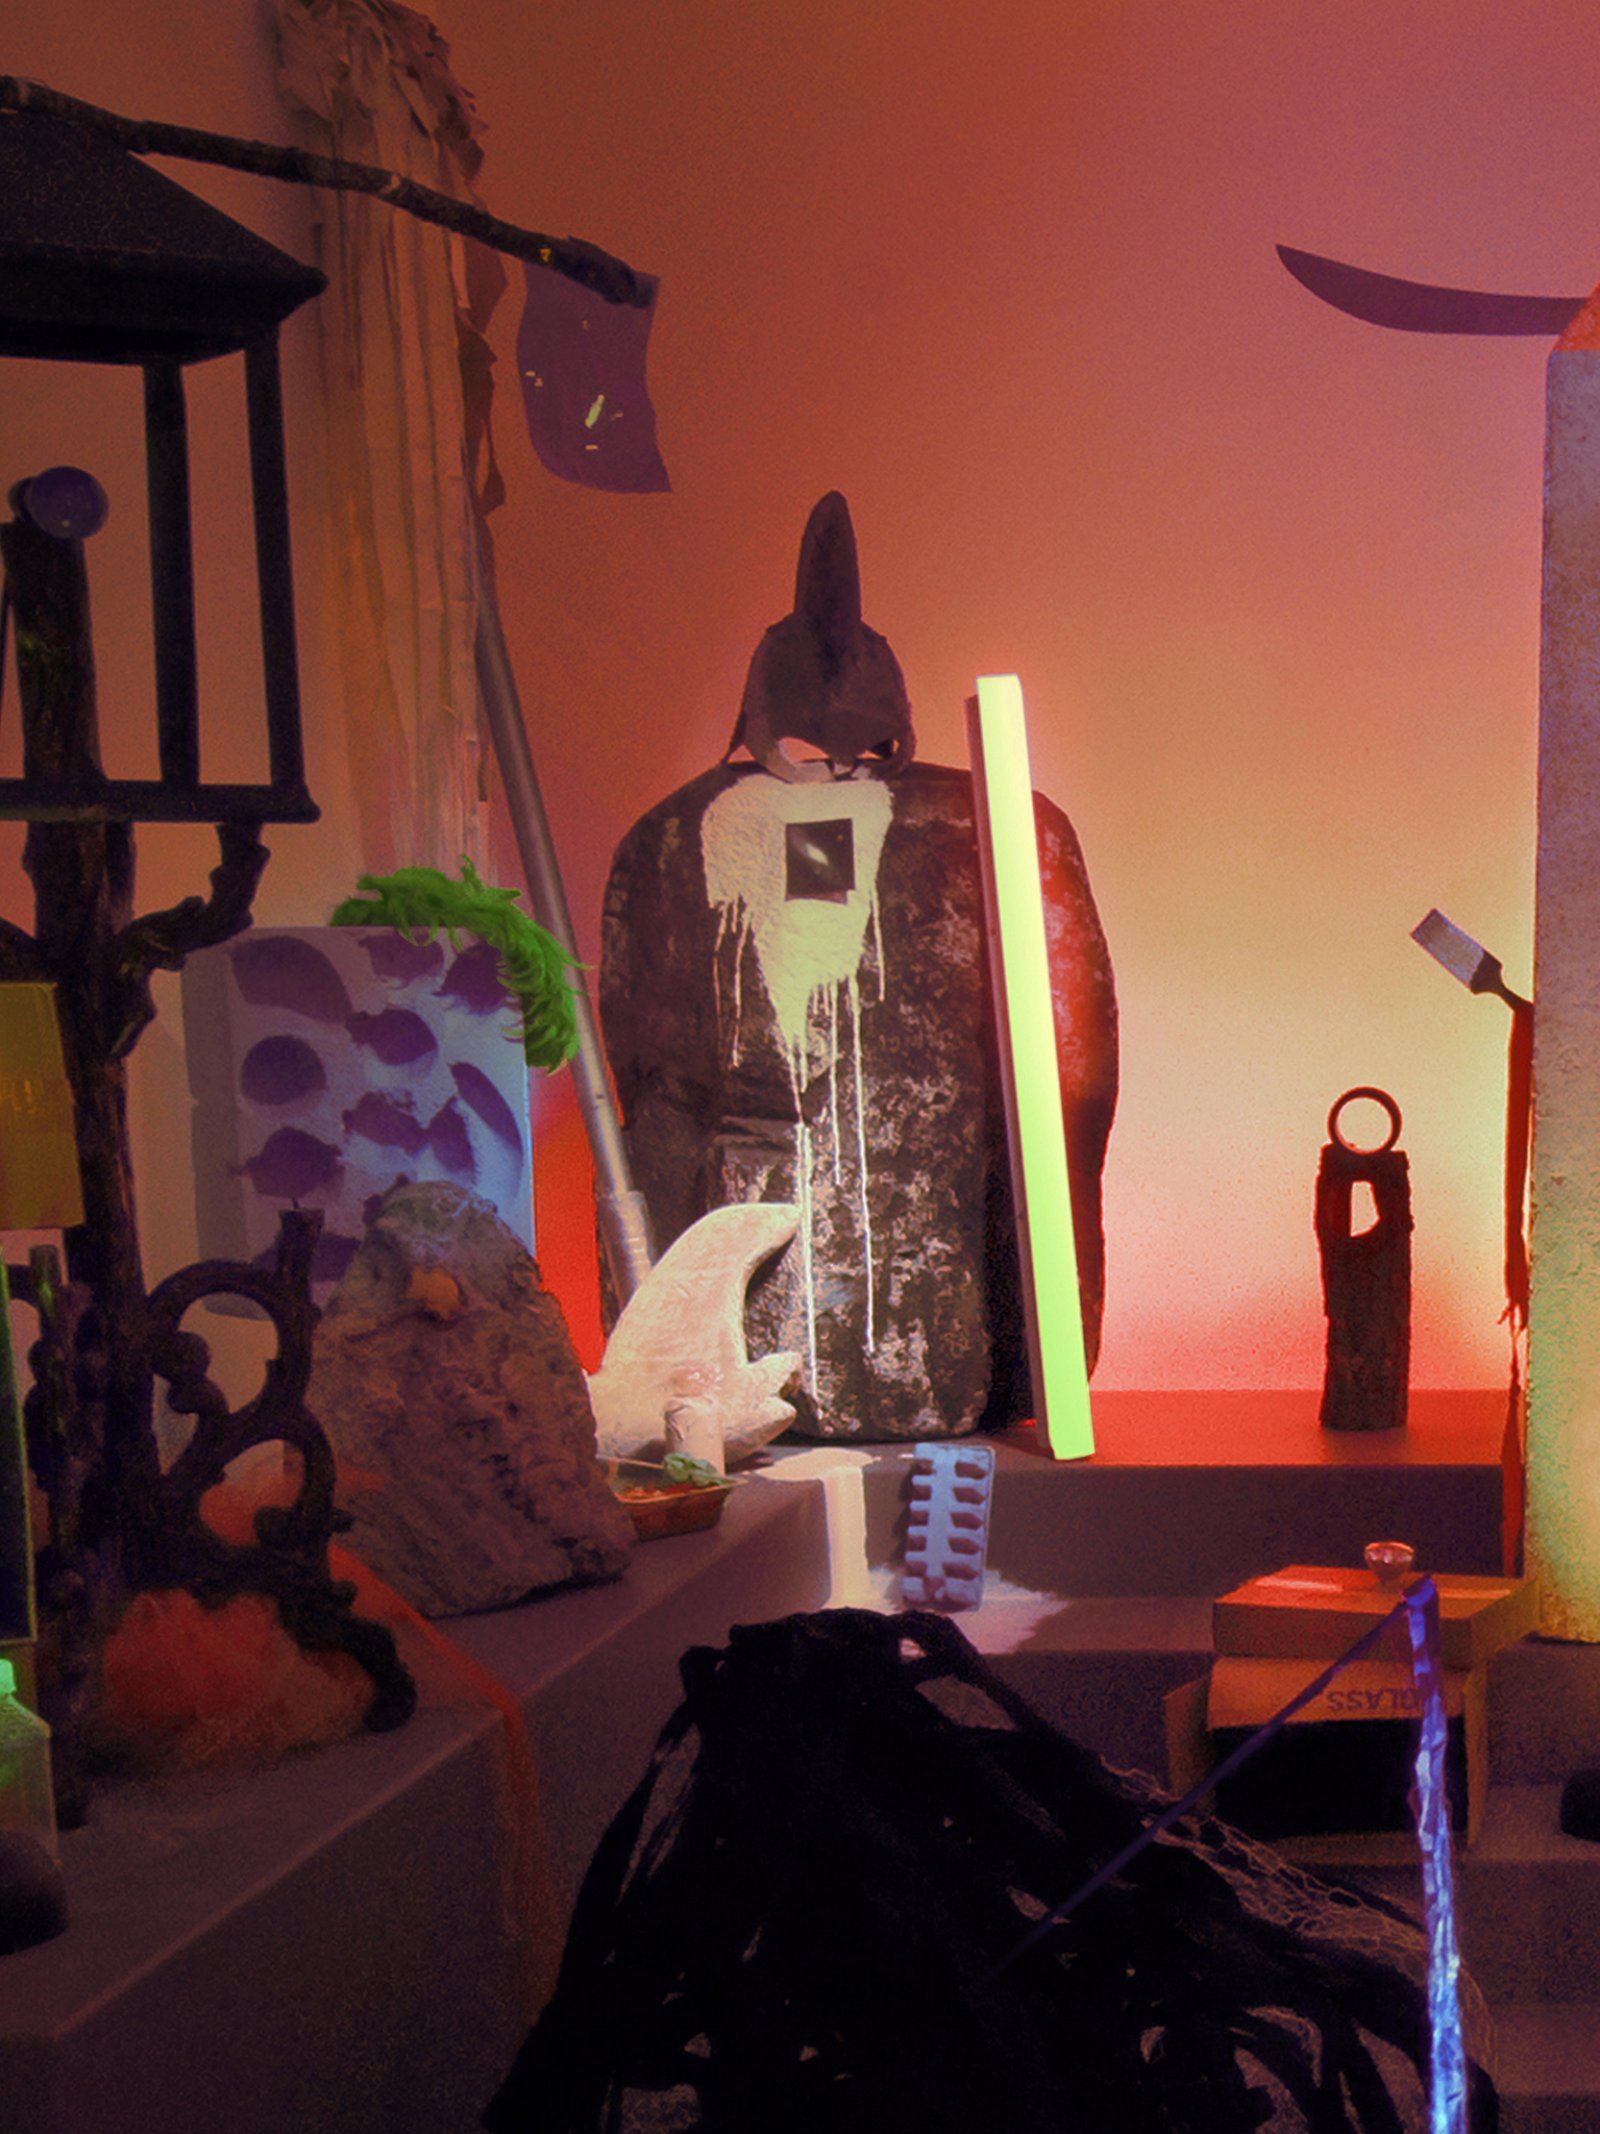 Geoffrey Farmer,Theatre of Cruelty, 2008, props, found objects, fabric, computer-controlled LED lighting system, speakers, framed photographs, dimensions variable